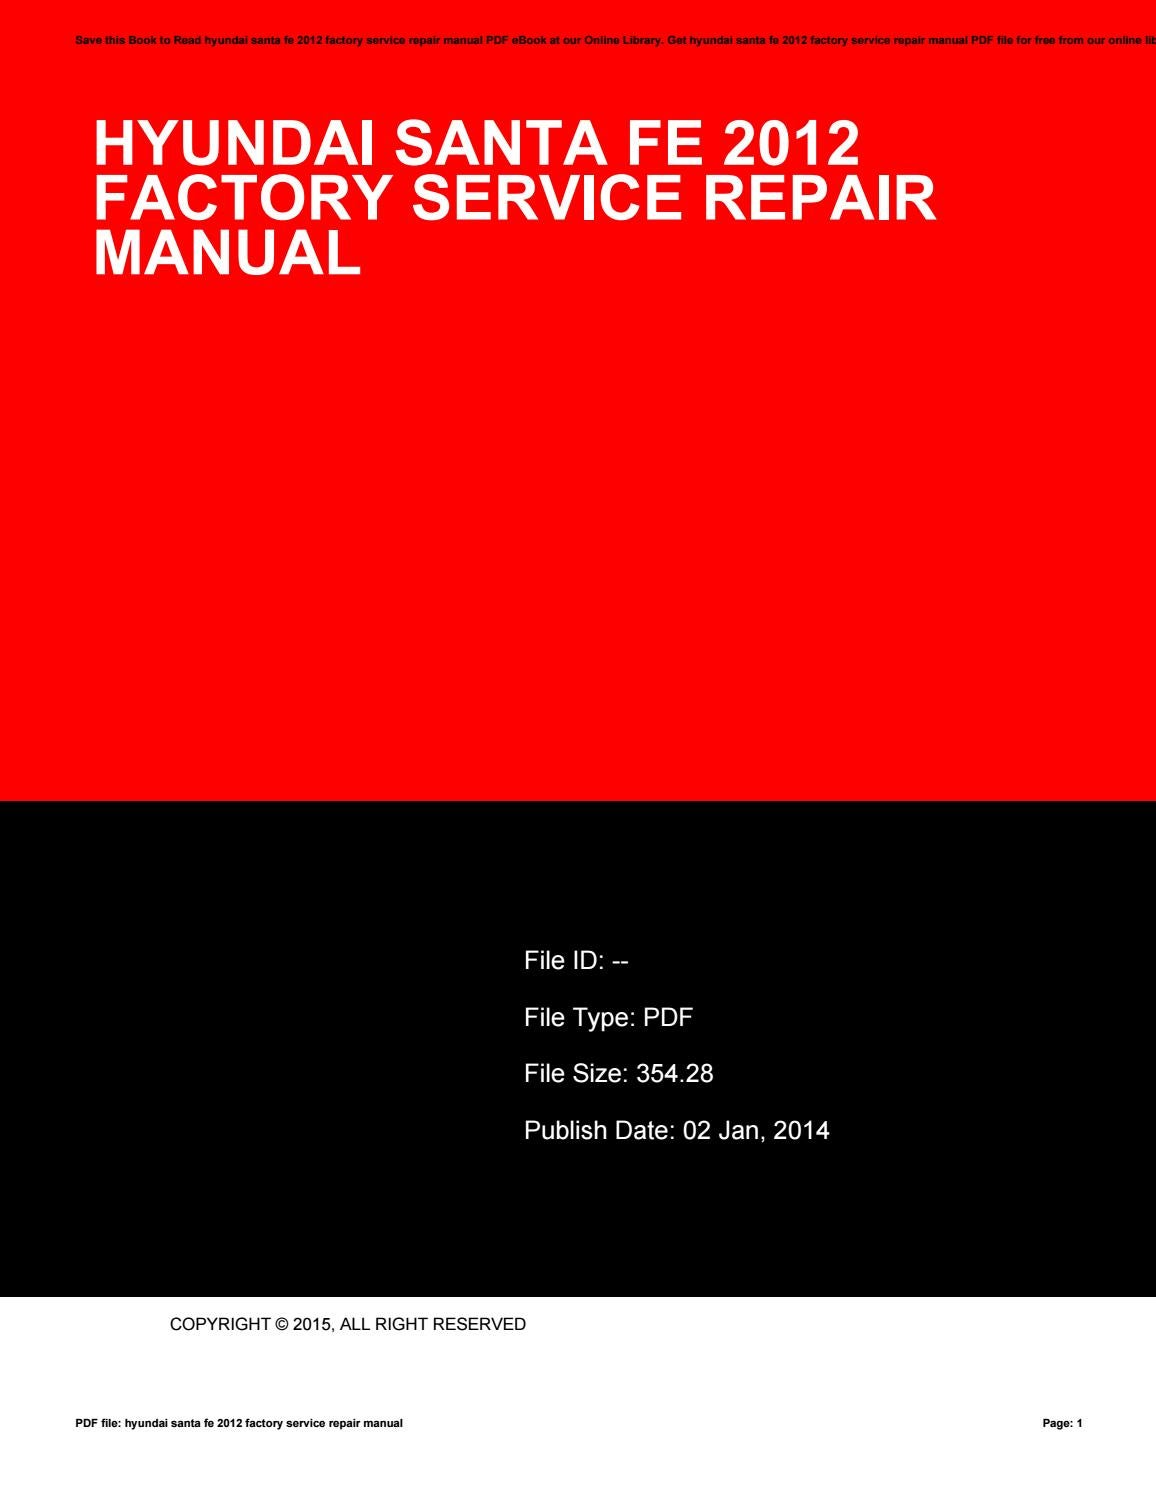 Hyundai santa fe 2012 factory service repair manual by BarbaraCarter1347 -  issuu